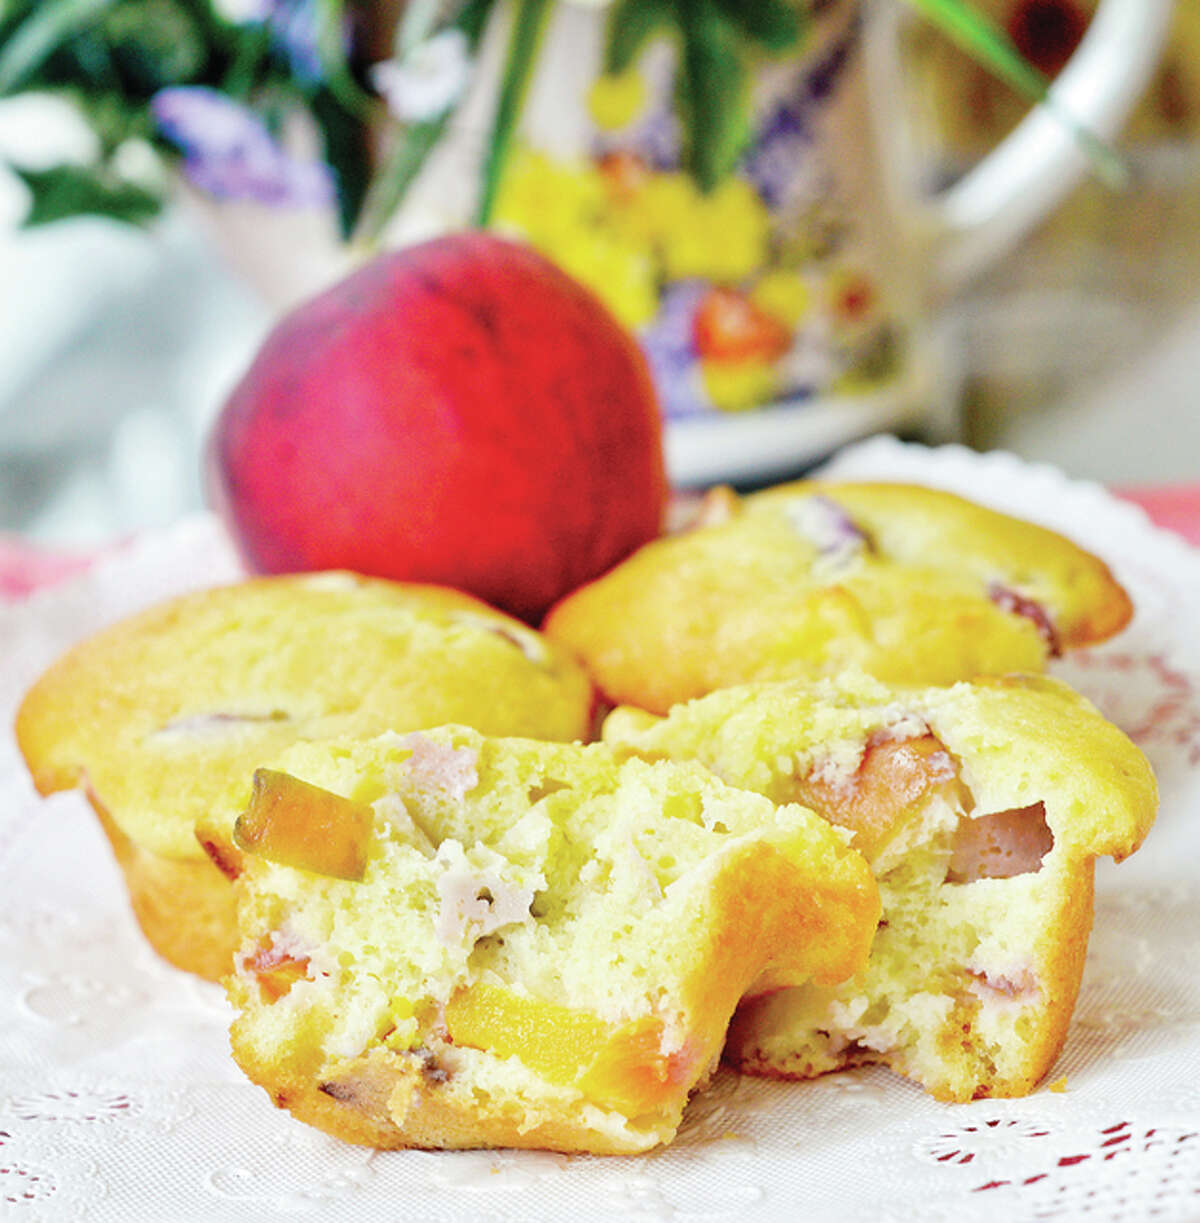 Peach muffins add a touch of sweetness to breakfast, though it's not limited to the first meal of the day.